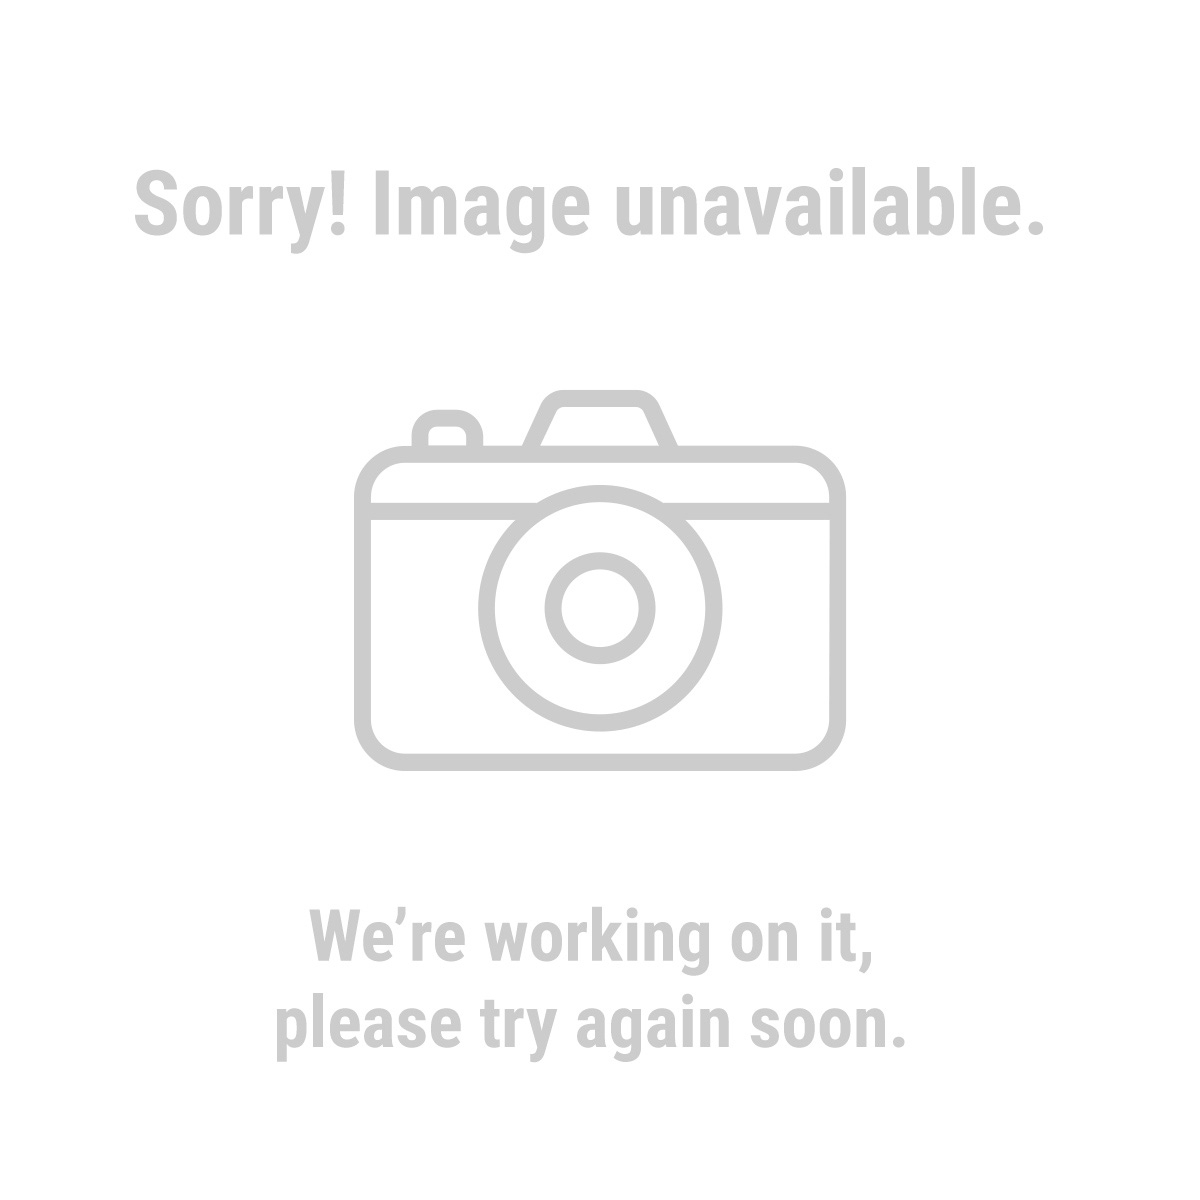 Storehouse 67670 70 Piece Stainless Steel Nut and Washer Assortment